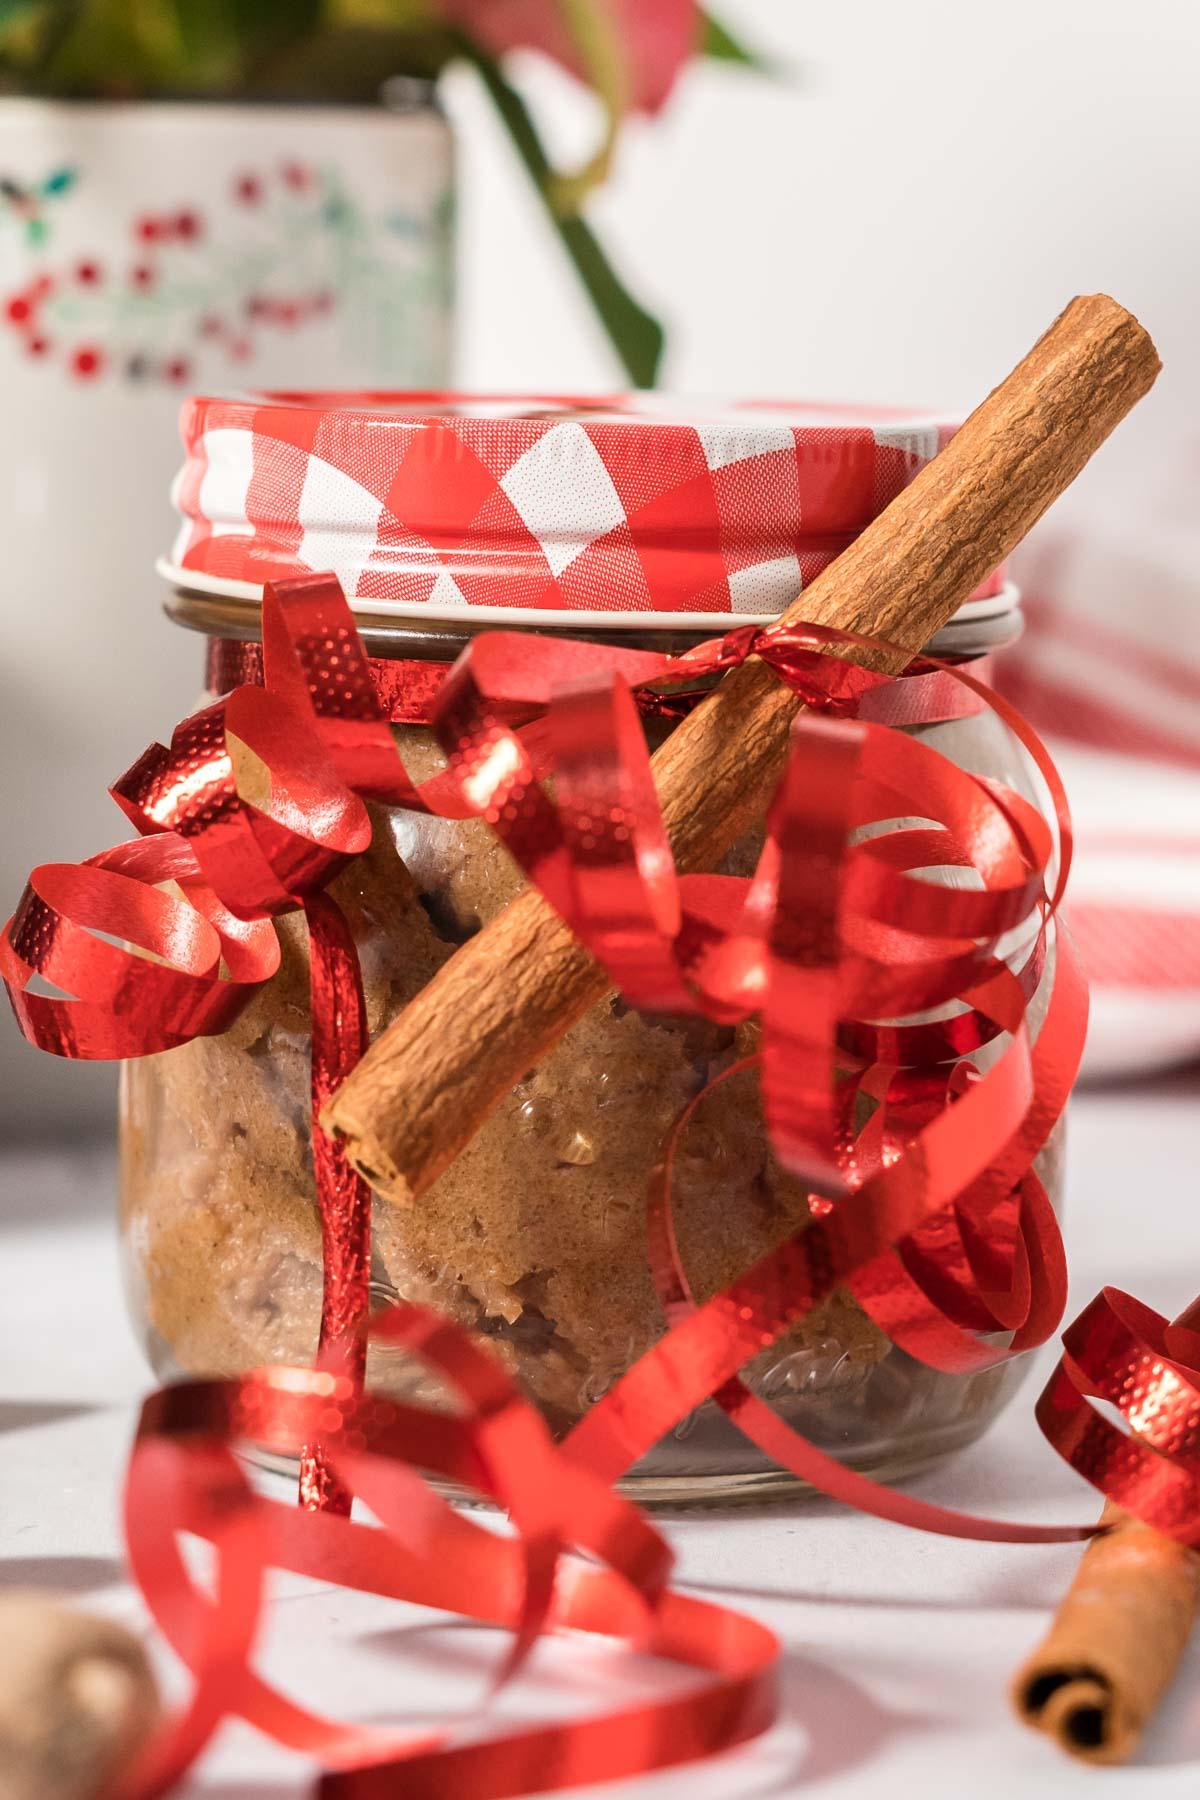 Hot buttered rum mix in a jar decorated with cinnamon sticks and curly red ribbon.